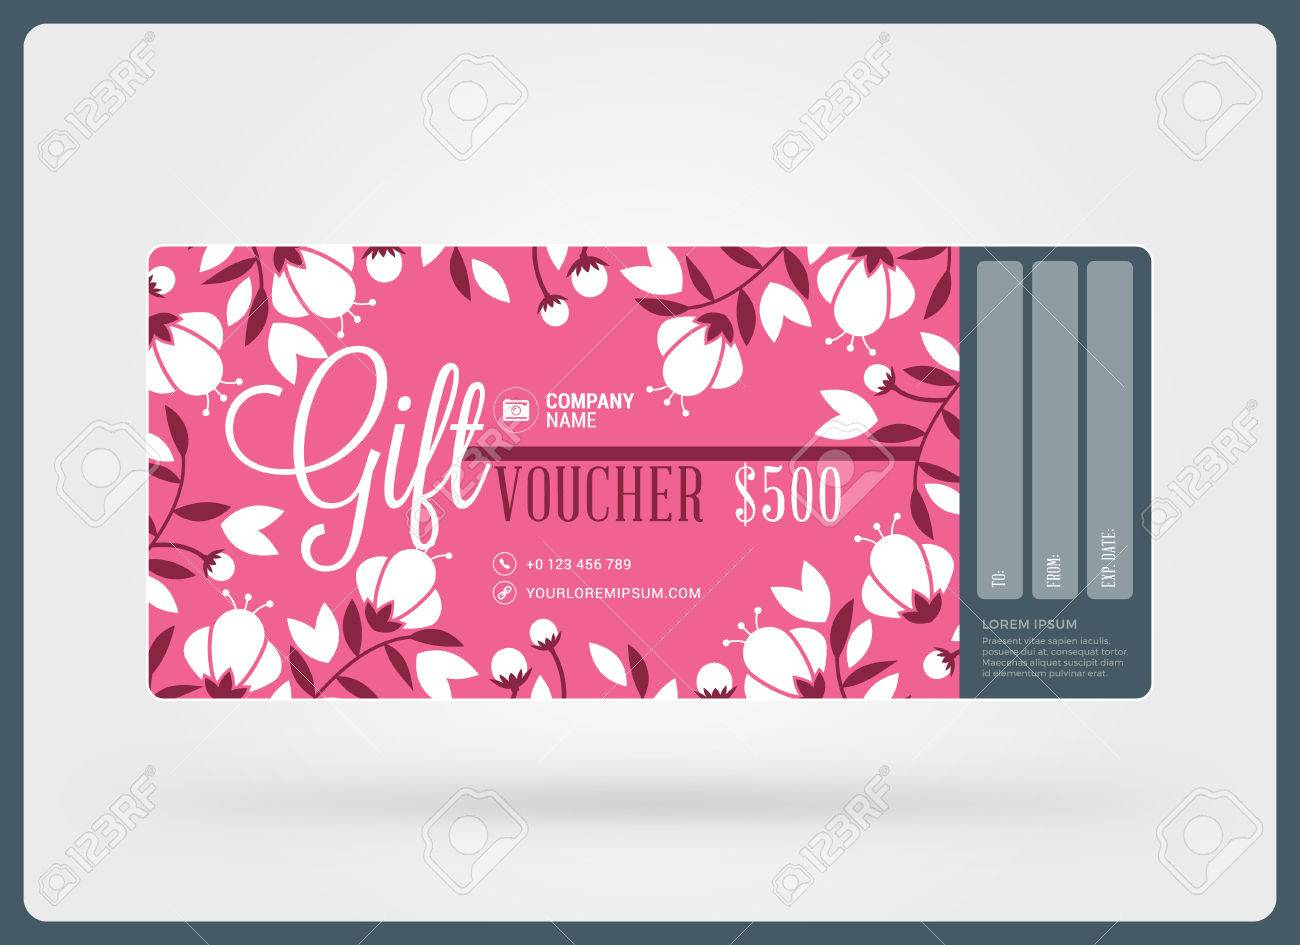 Gift voucher vector design template discount card gift gift voucher vector design template discount card gift certificate pink color theme yadclub Gallery